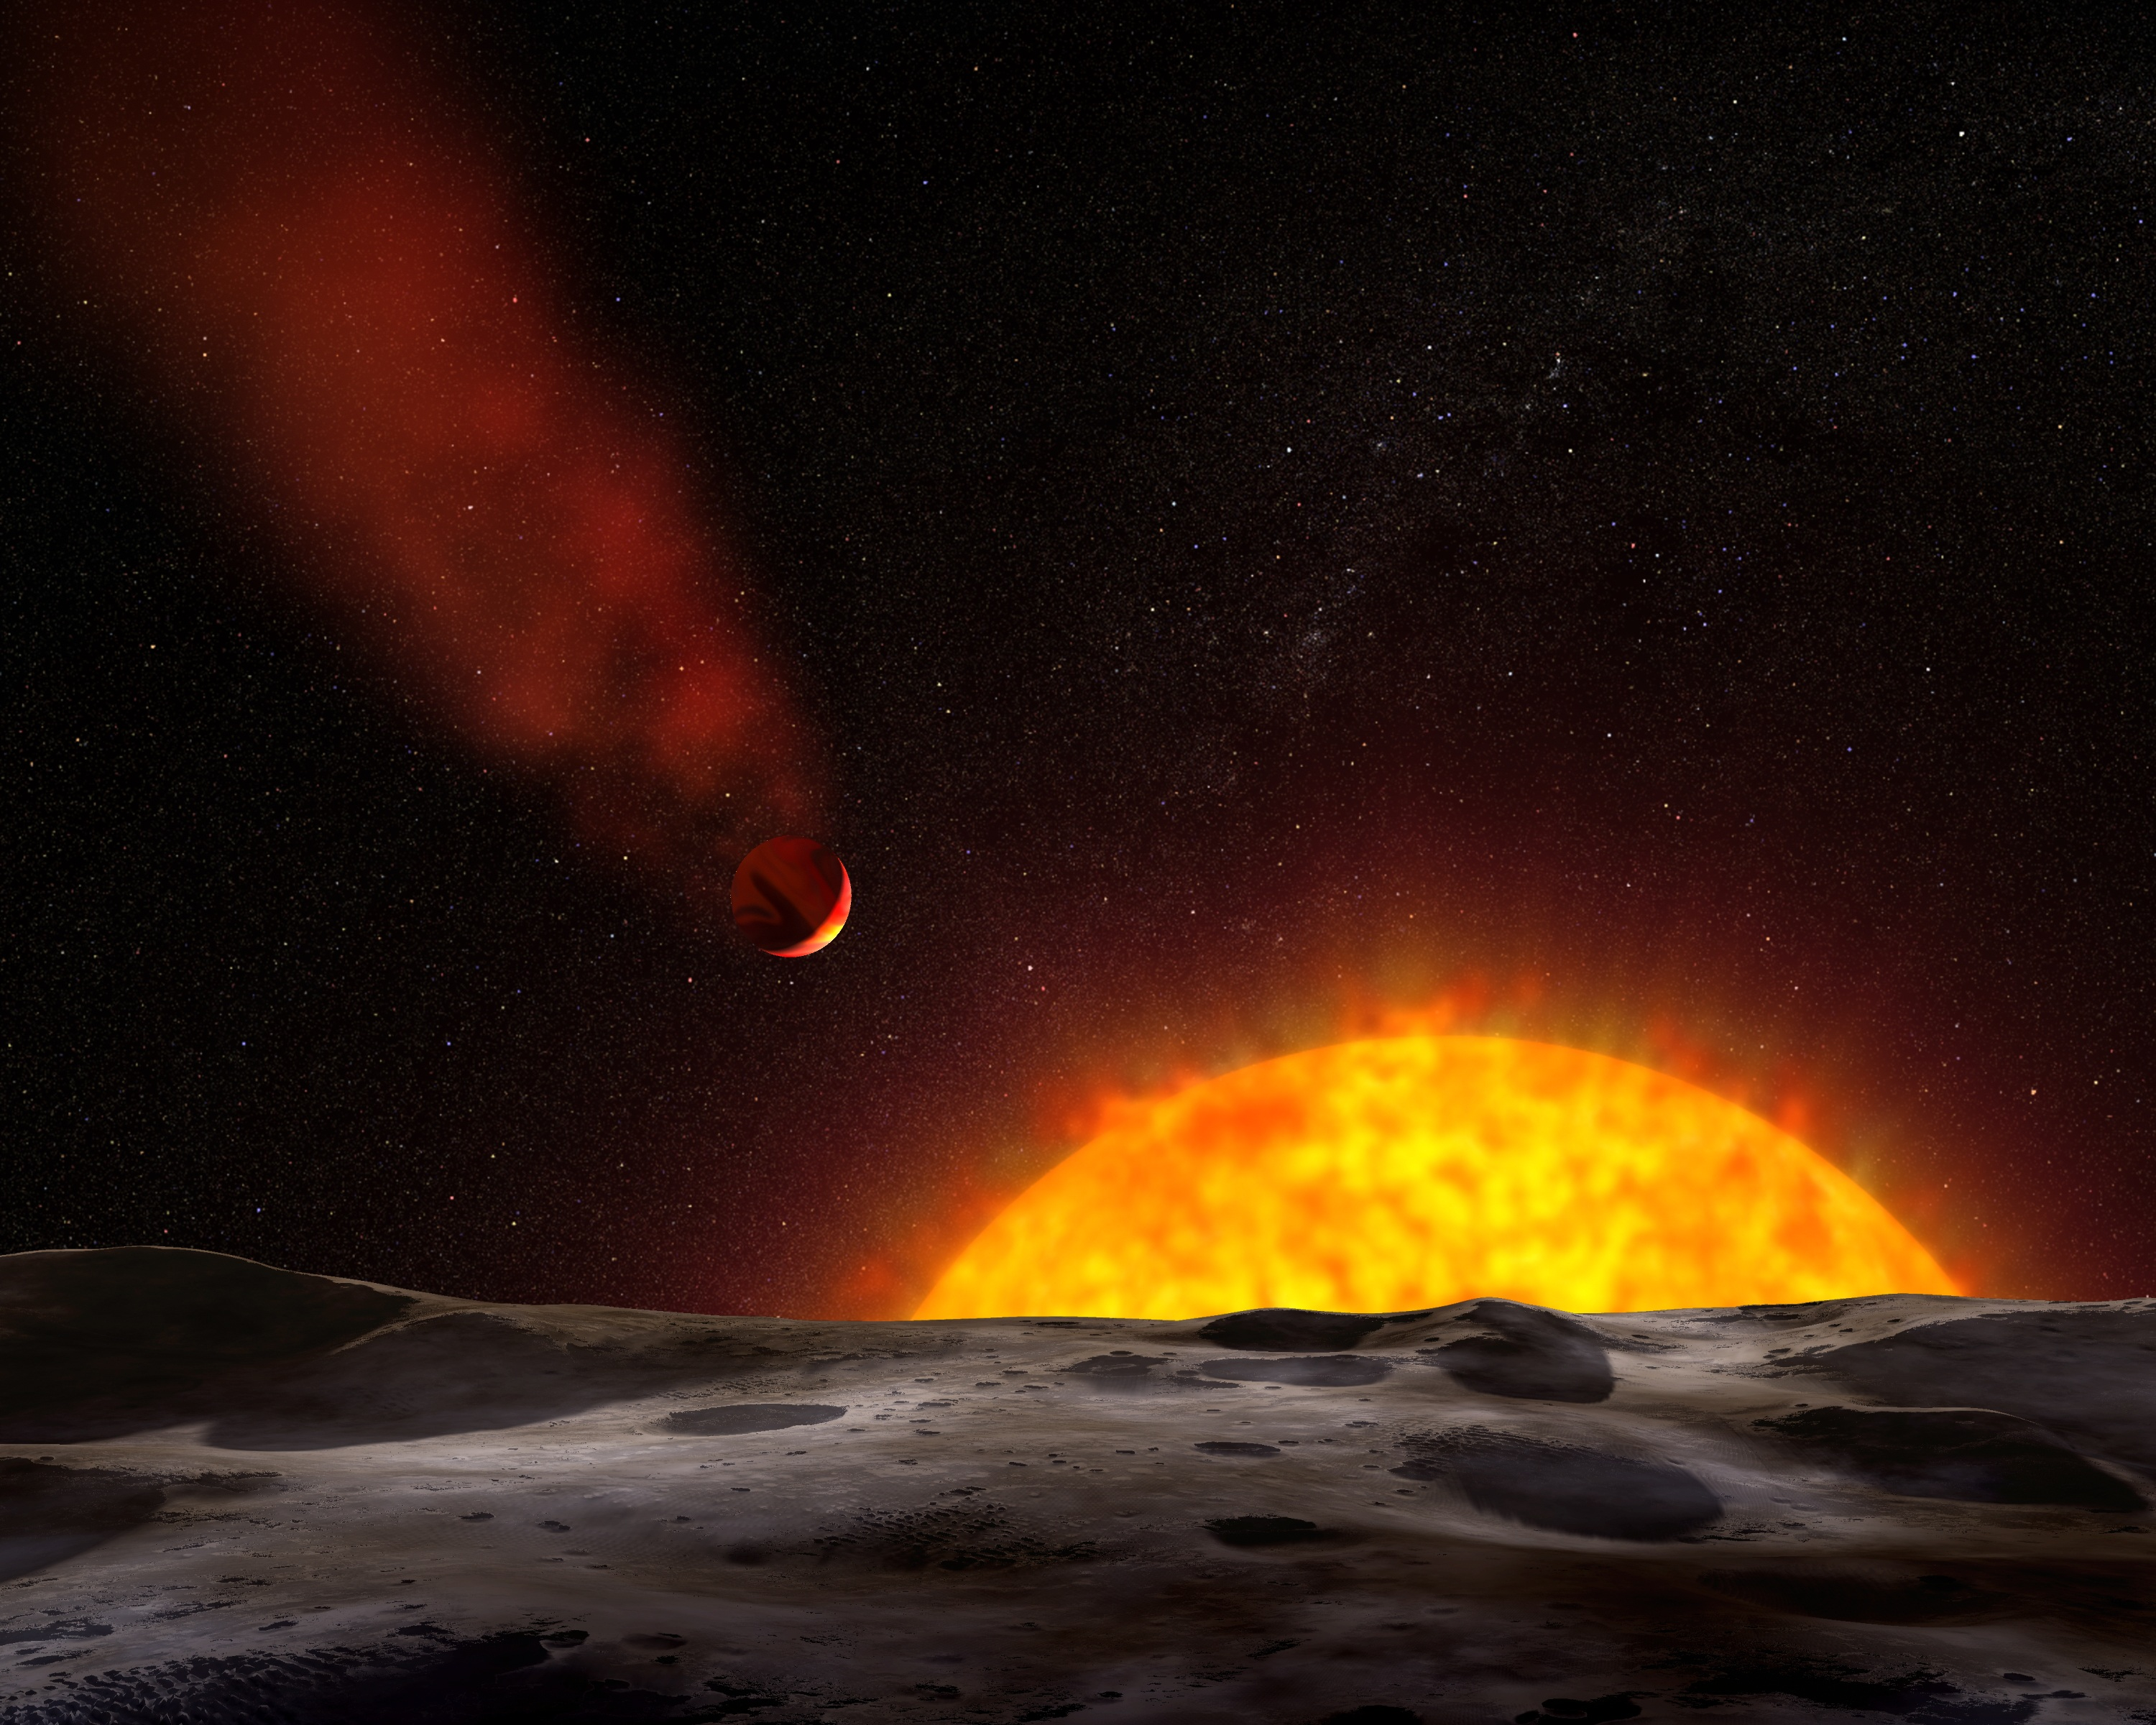 Surface of a planet with sun and an exoplanet in the background